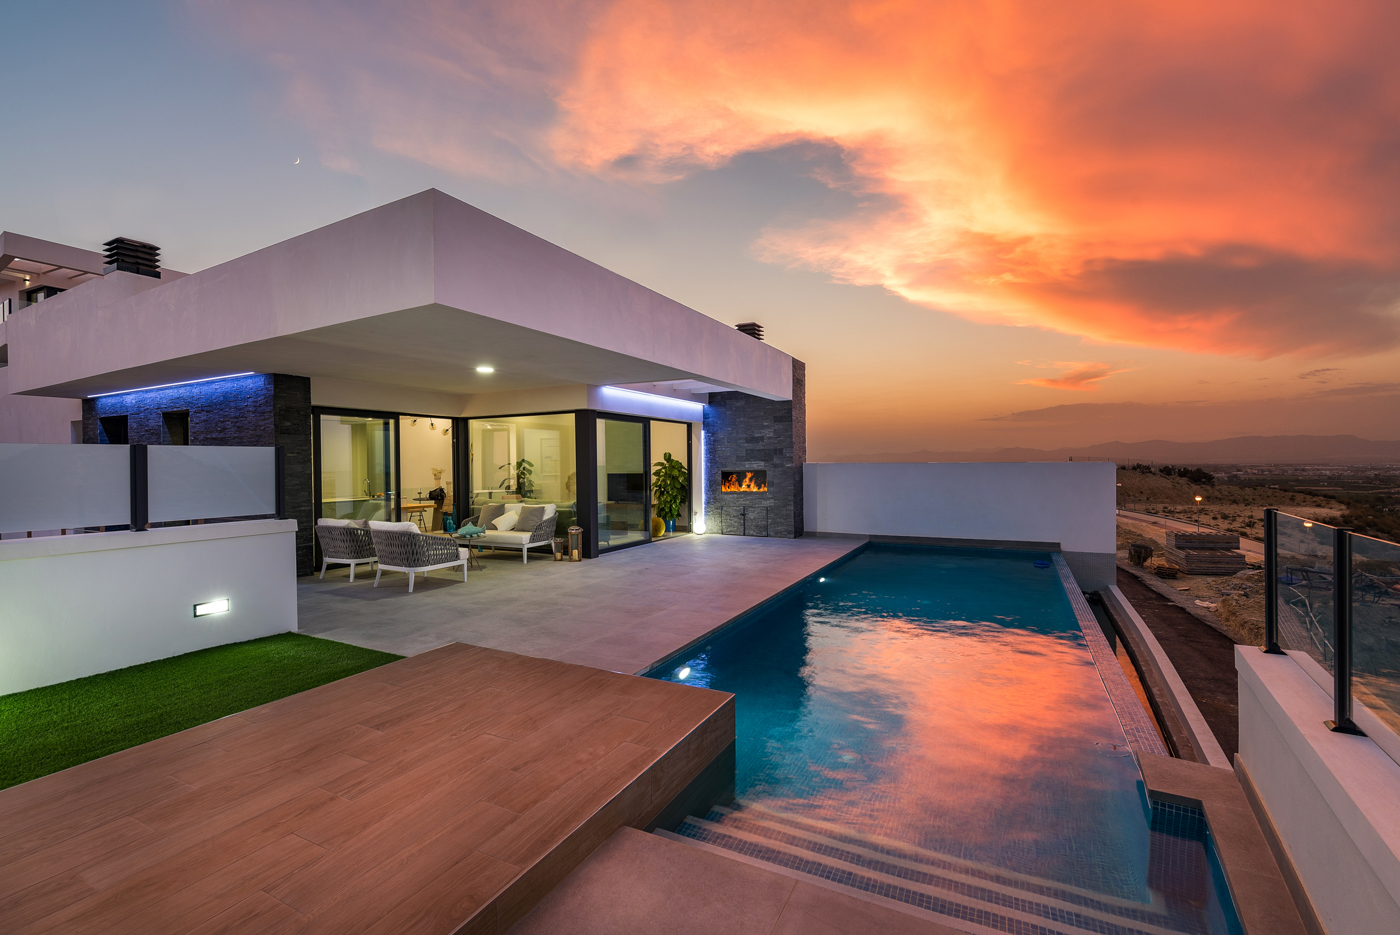 NEW BUILD Stunning 3 Bedroom Villa With Infinity Pool in Ciudad Quesada, Alicante